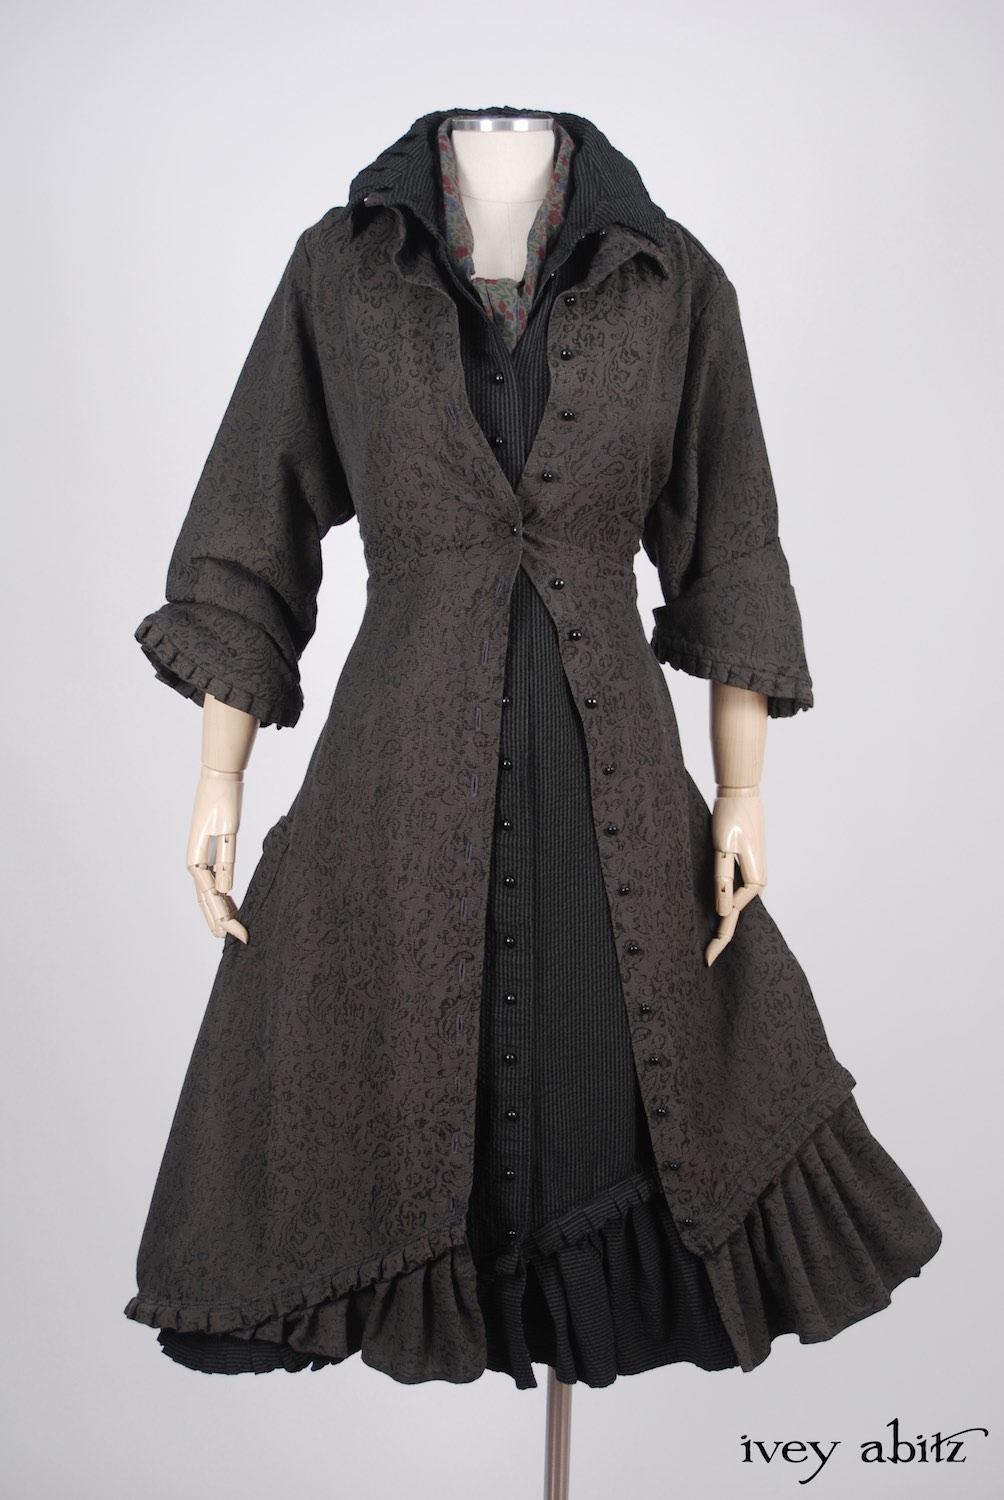 Ivey Abitz - Wilhemena Duster Coat in Moonlit Meadow Vine Weave  - Wilhemena Frock in Moonlit Meadow Puckered Striped Cotton  - Clotaire Sash in Peony Meadow Cotton Voile